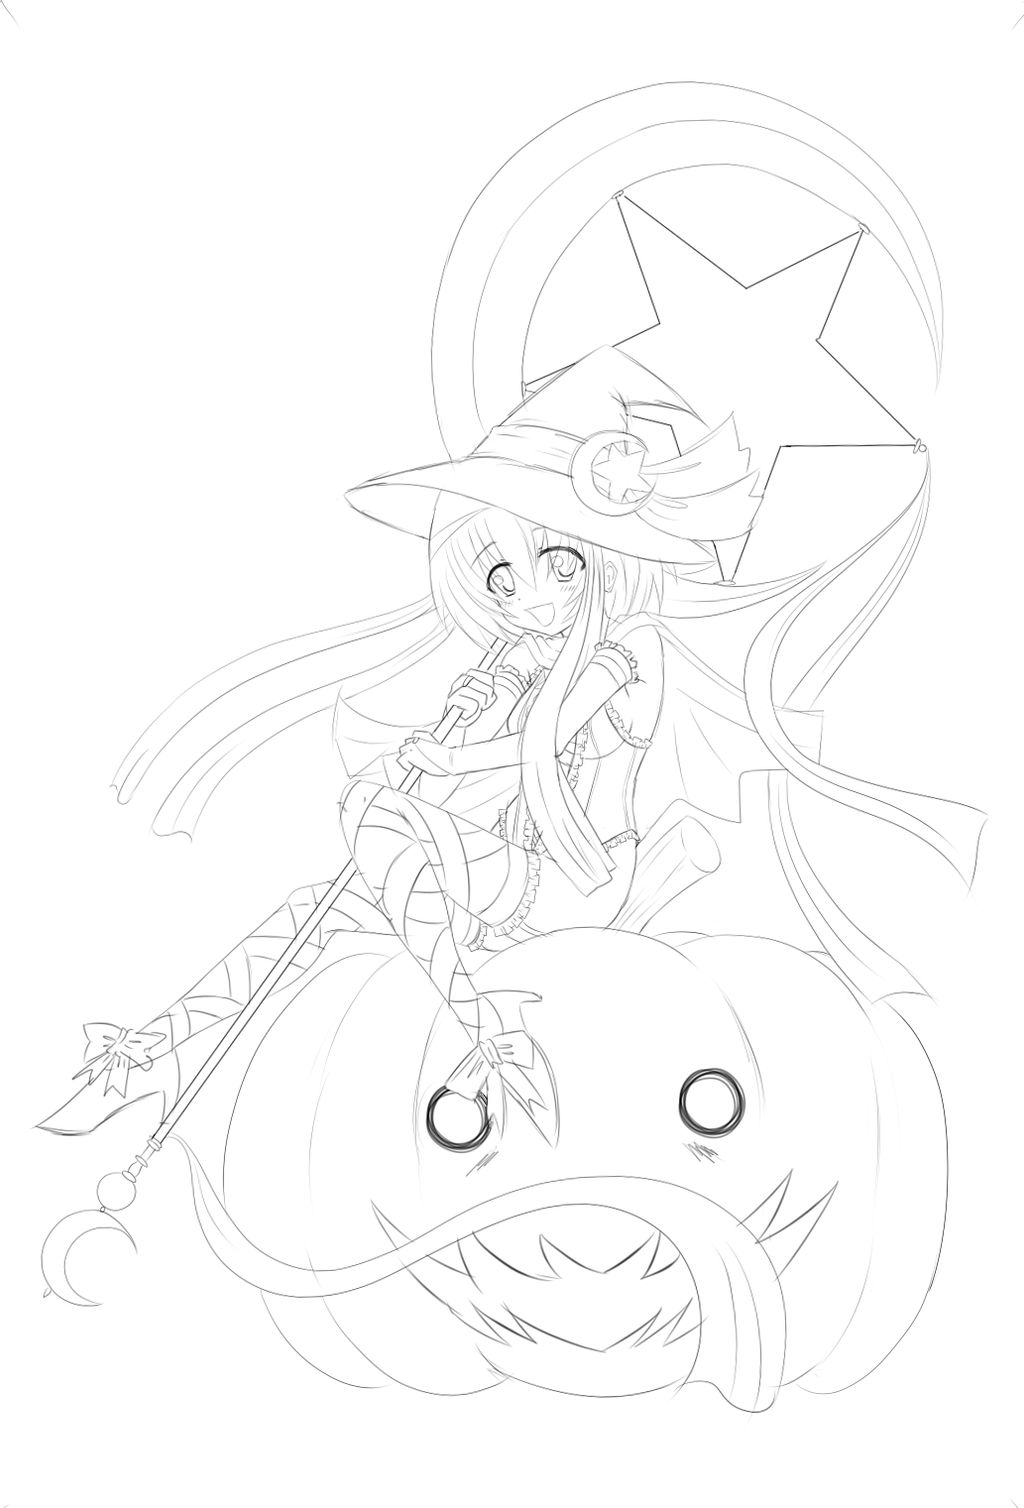 Anime loli witch for halloween 2013 sketch by